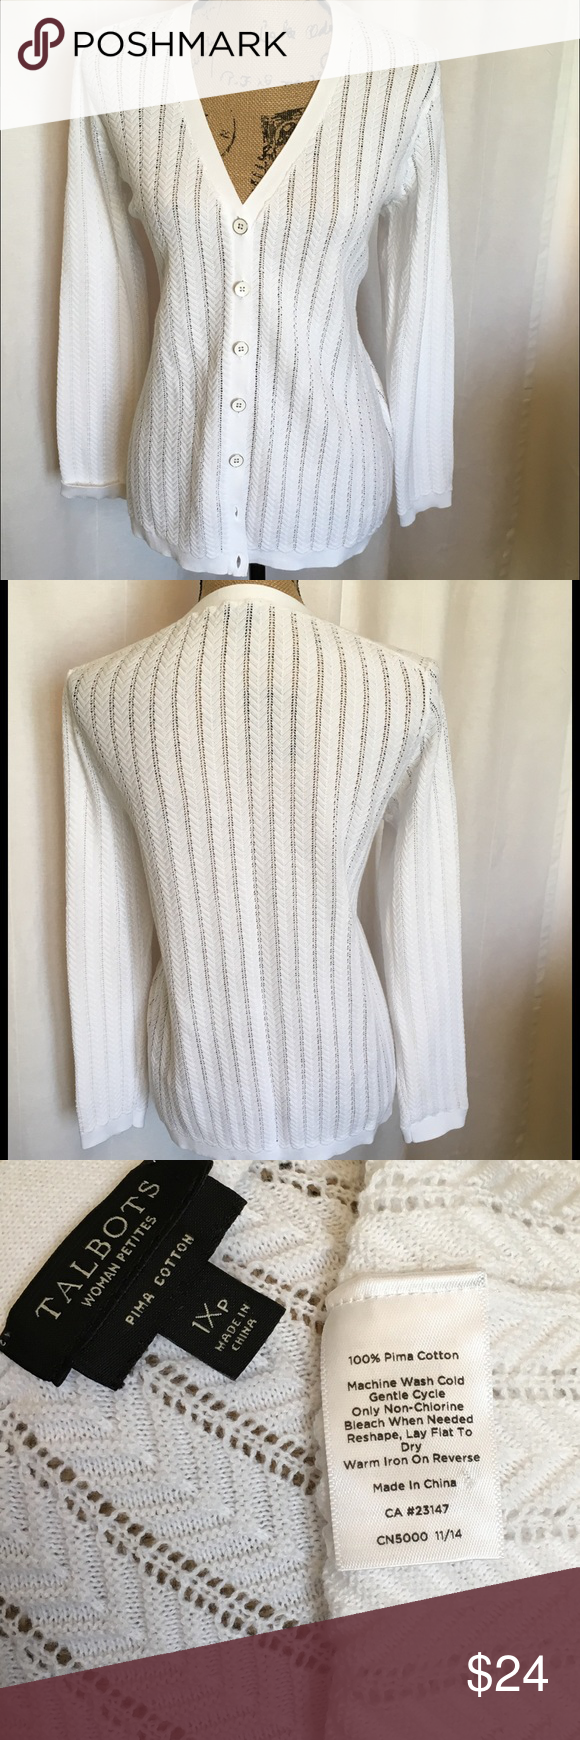 SOLD IN BUNDLE* Talbots Petite OpenWeave Cardigan | Lightweight ...